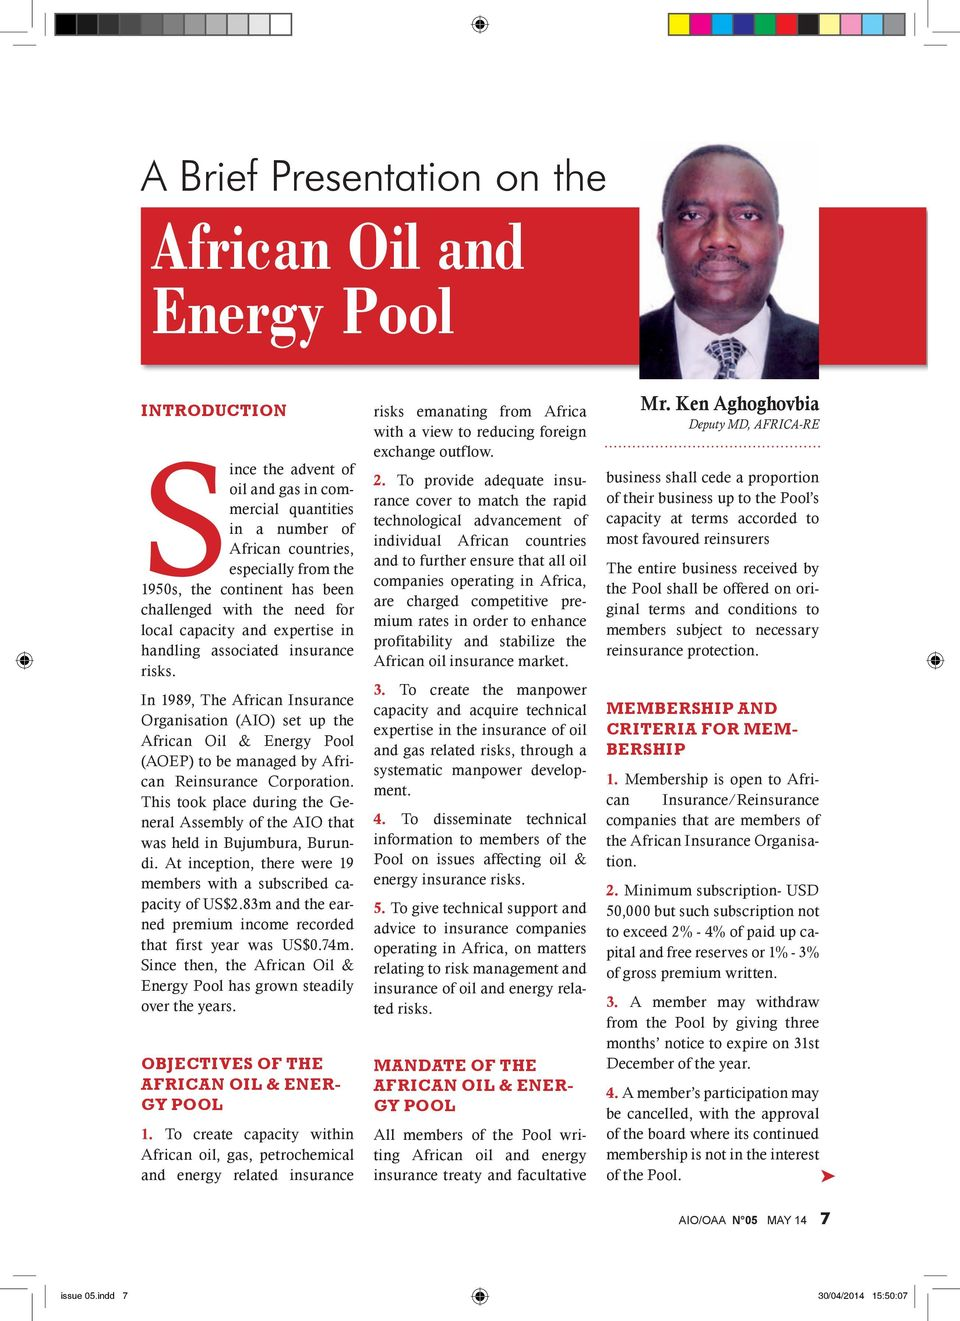 In 1989, The African Insurance Organisation (AIO) set up the African Oil & Energy Pool (AOEP) to be managed by African Reinsurance Corporation.